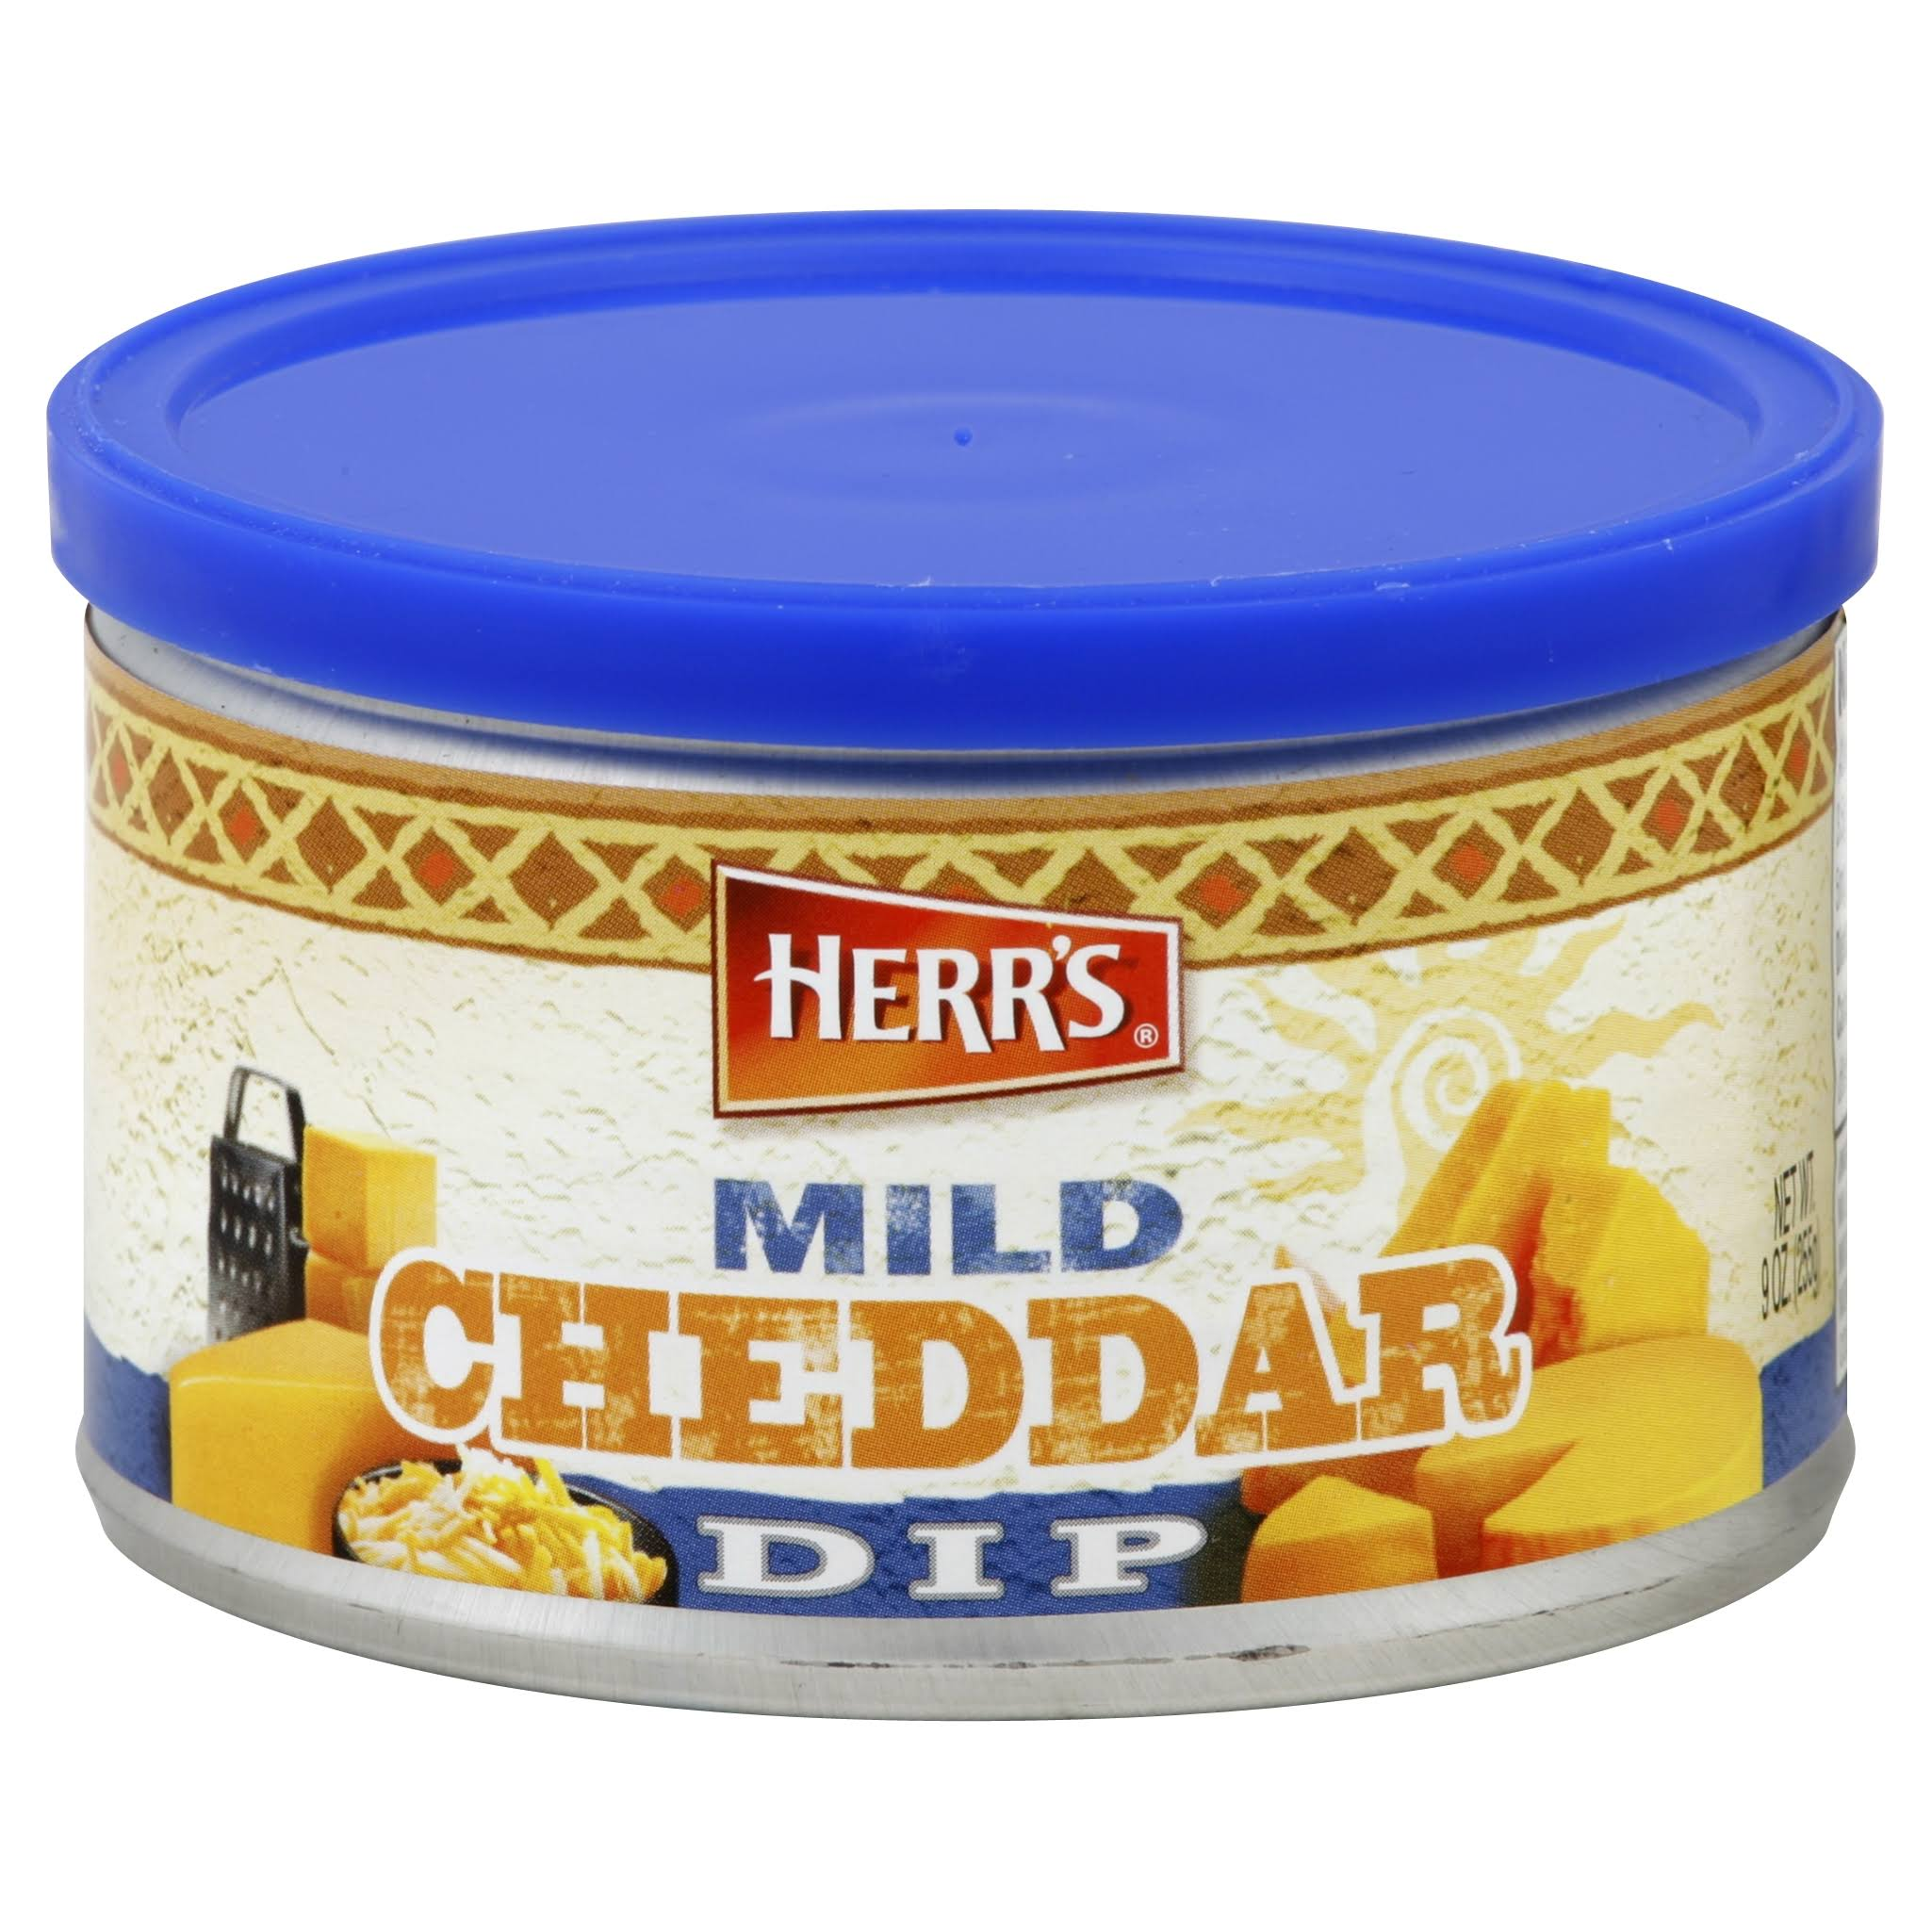 Herrs Mild Cheddar Cheese Dip - 255g